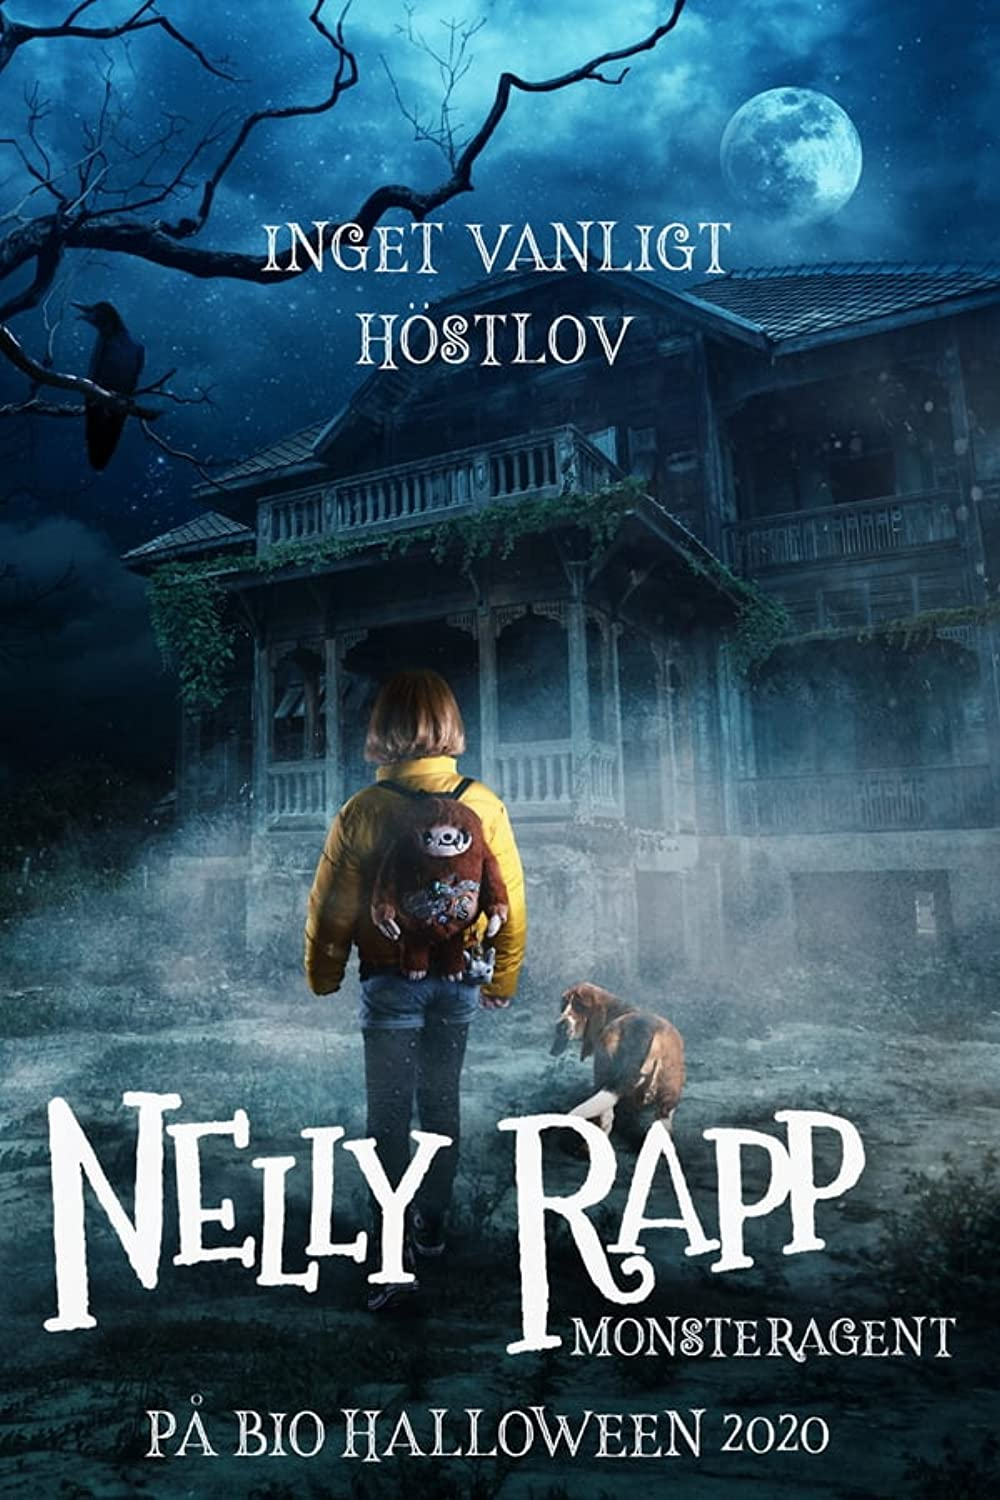 Watch Movie Nelly Rapp Monster Agent